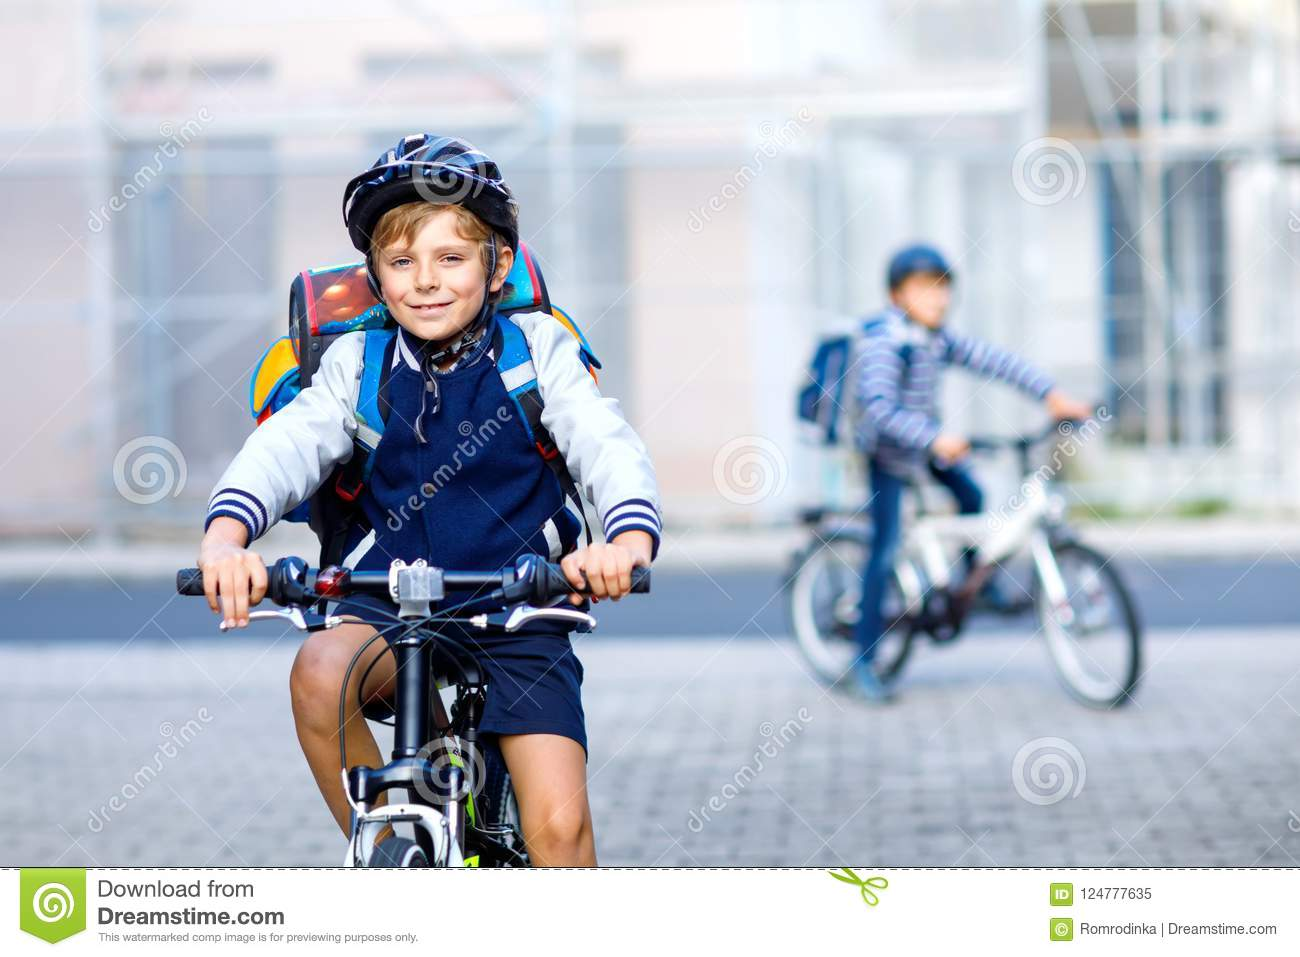 Two School Kid Boys In Safety Helmet Riding With Bike In The City With Backpacks Happy Children In Colorful Clothes Stock Image Image Of City Elementary 124777635